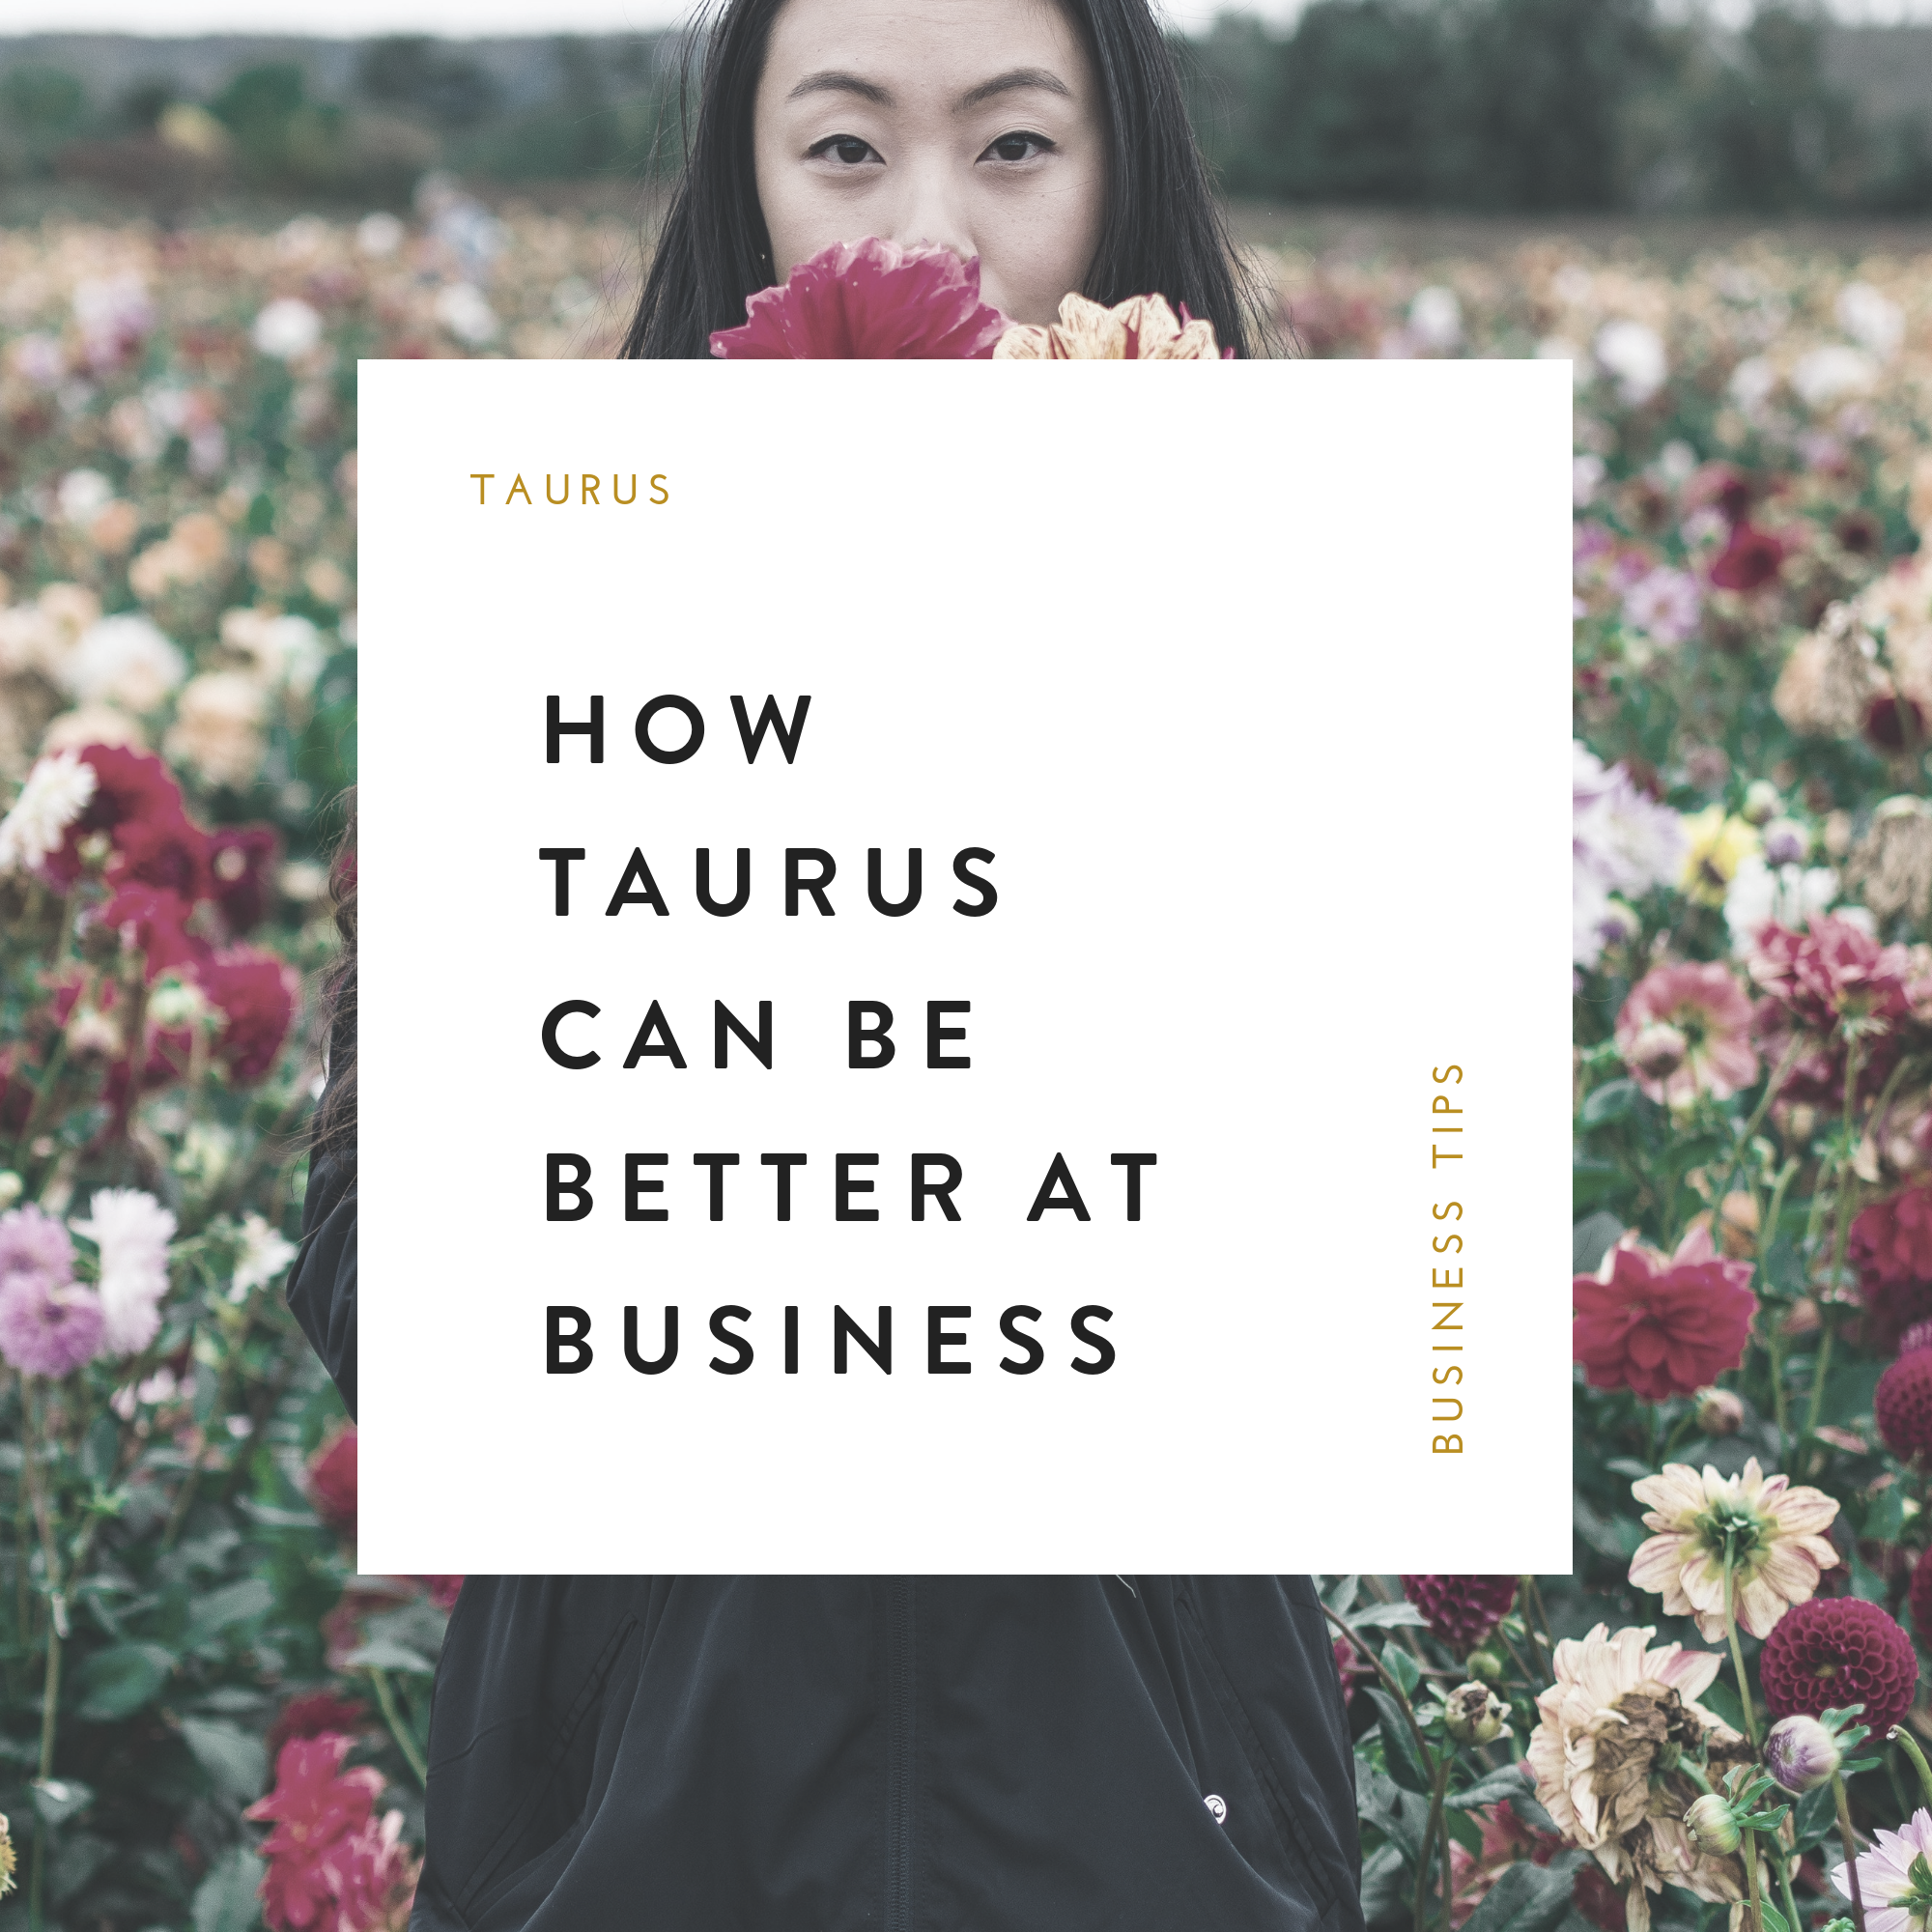 How Taurus Can Be Better Business Owners.png